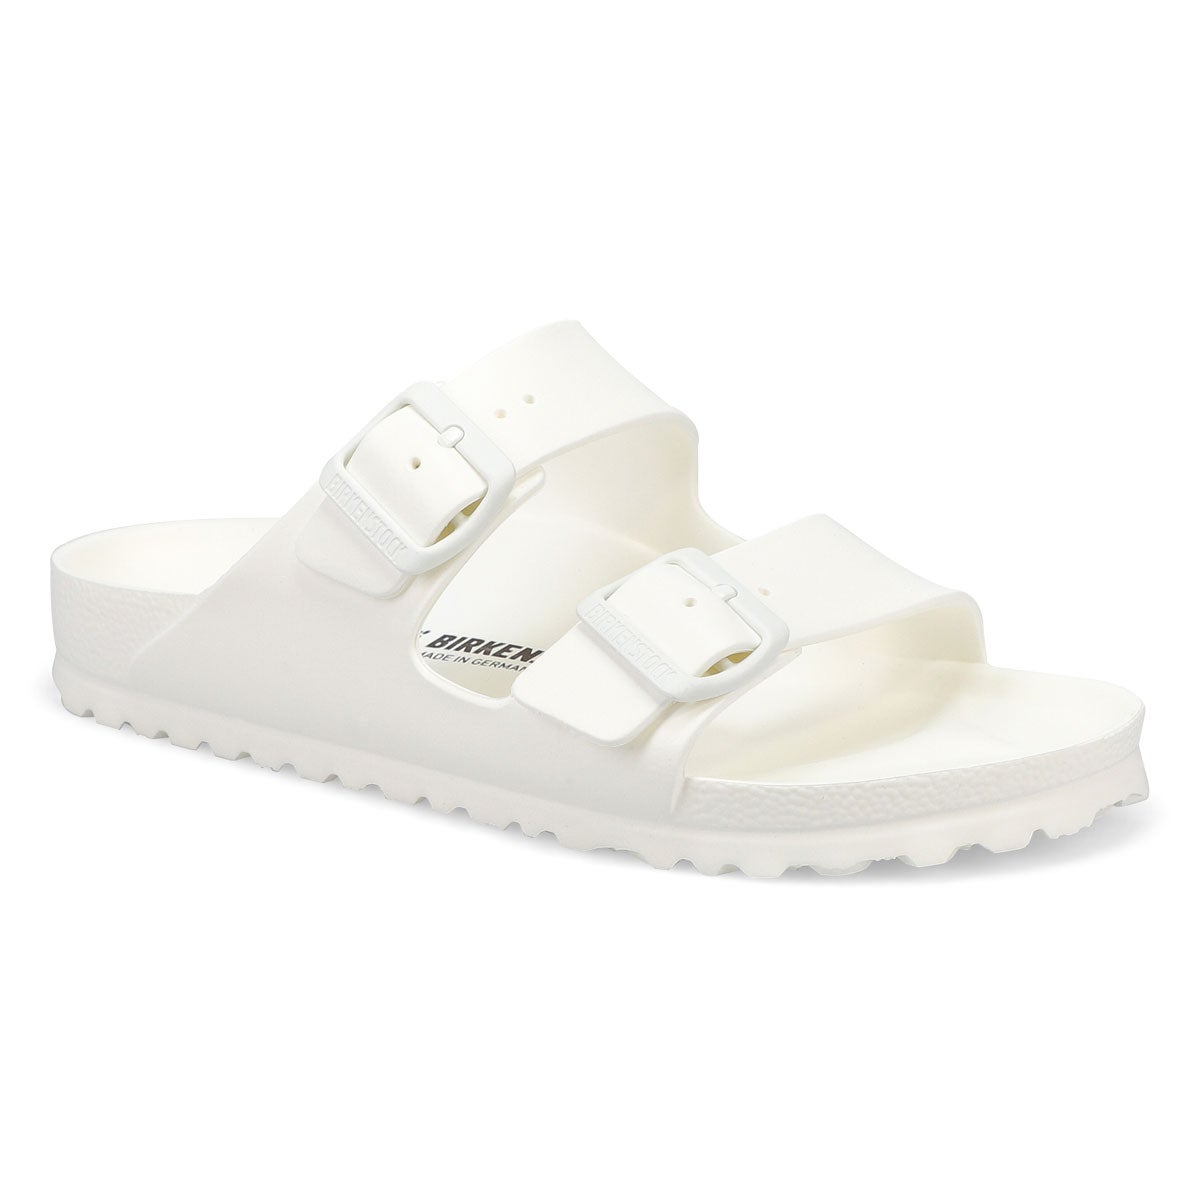 Lds Arizona white EVA sandal - Narrow